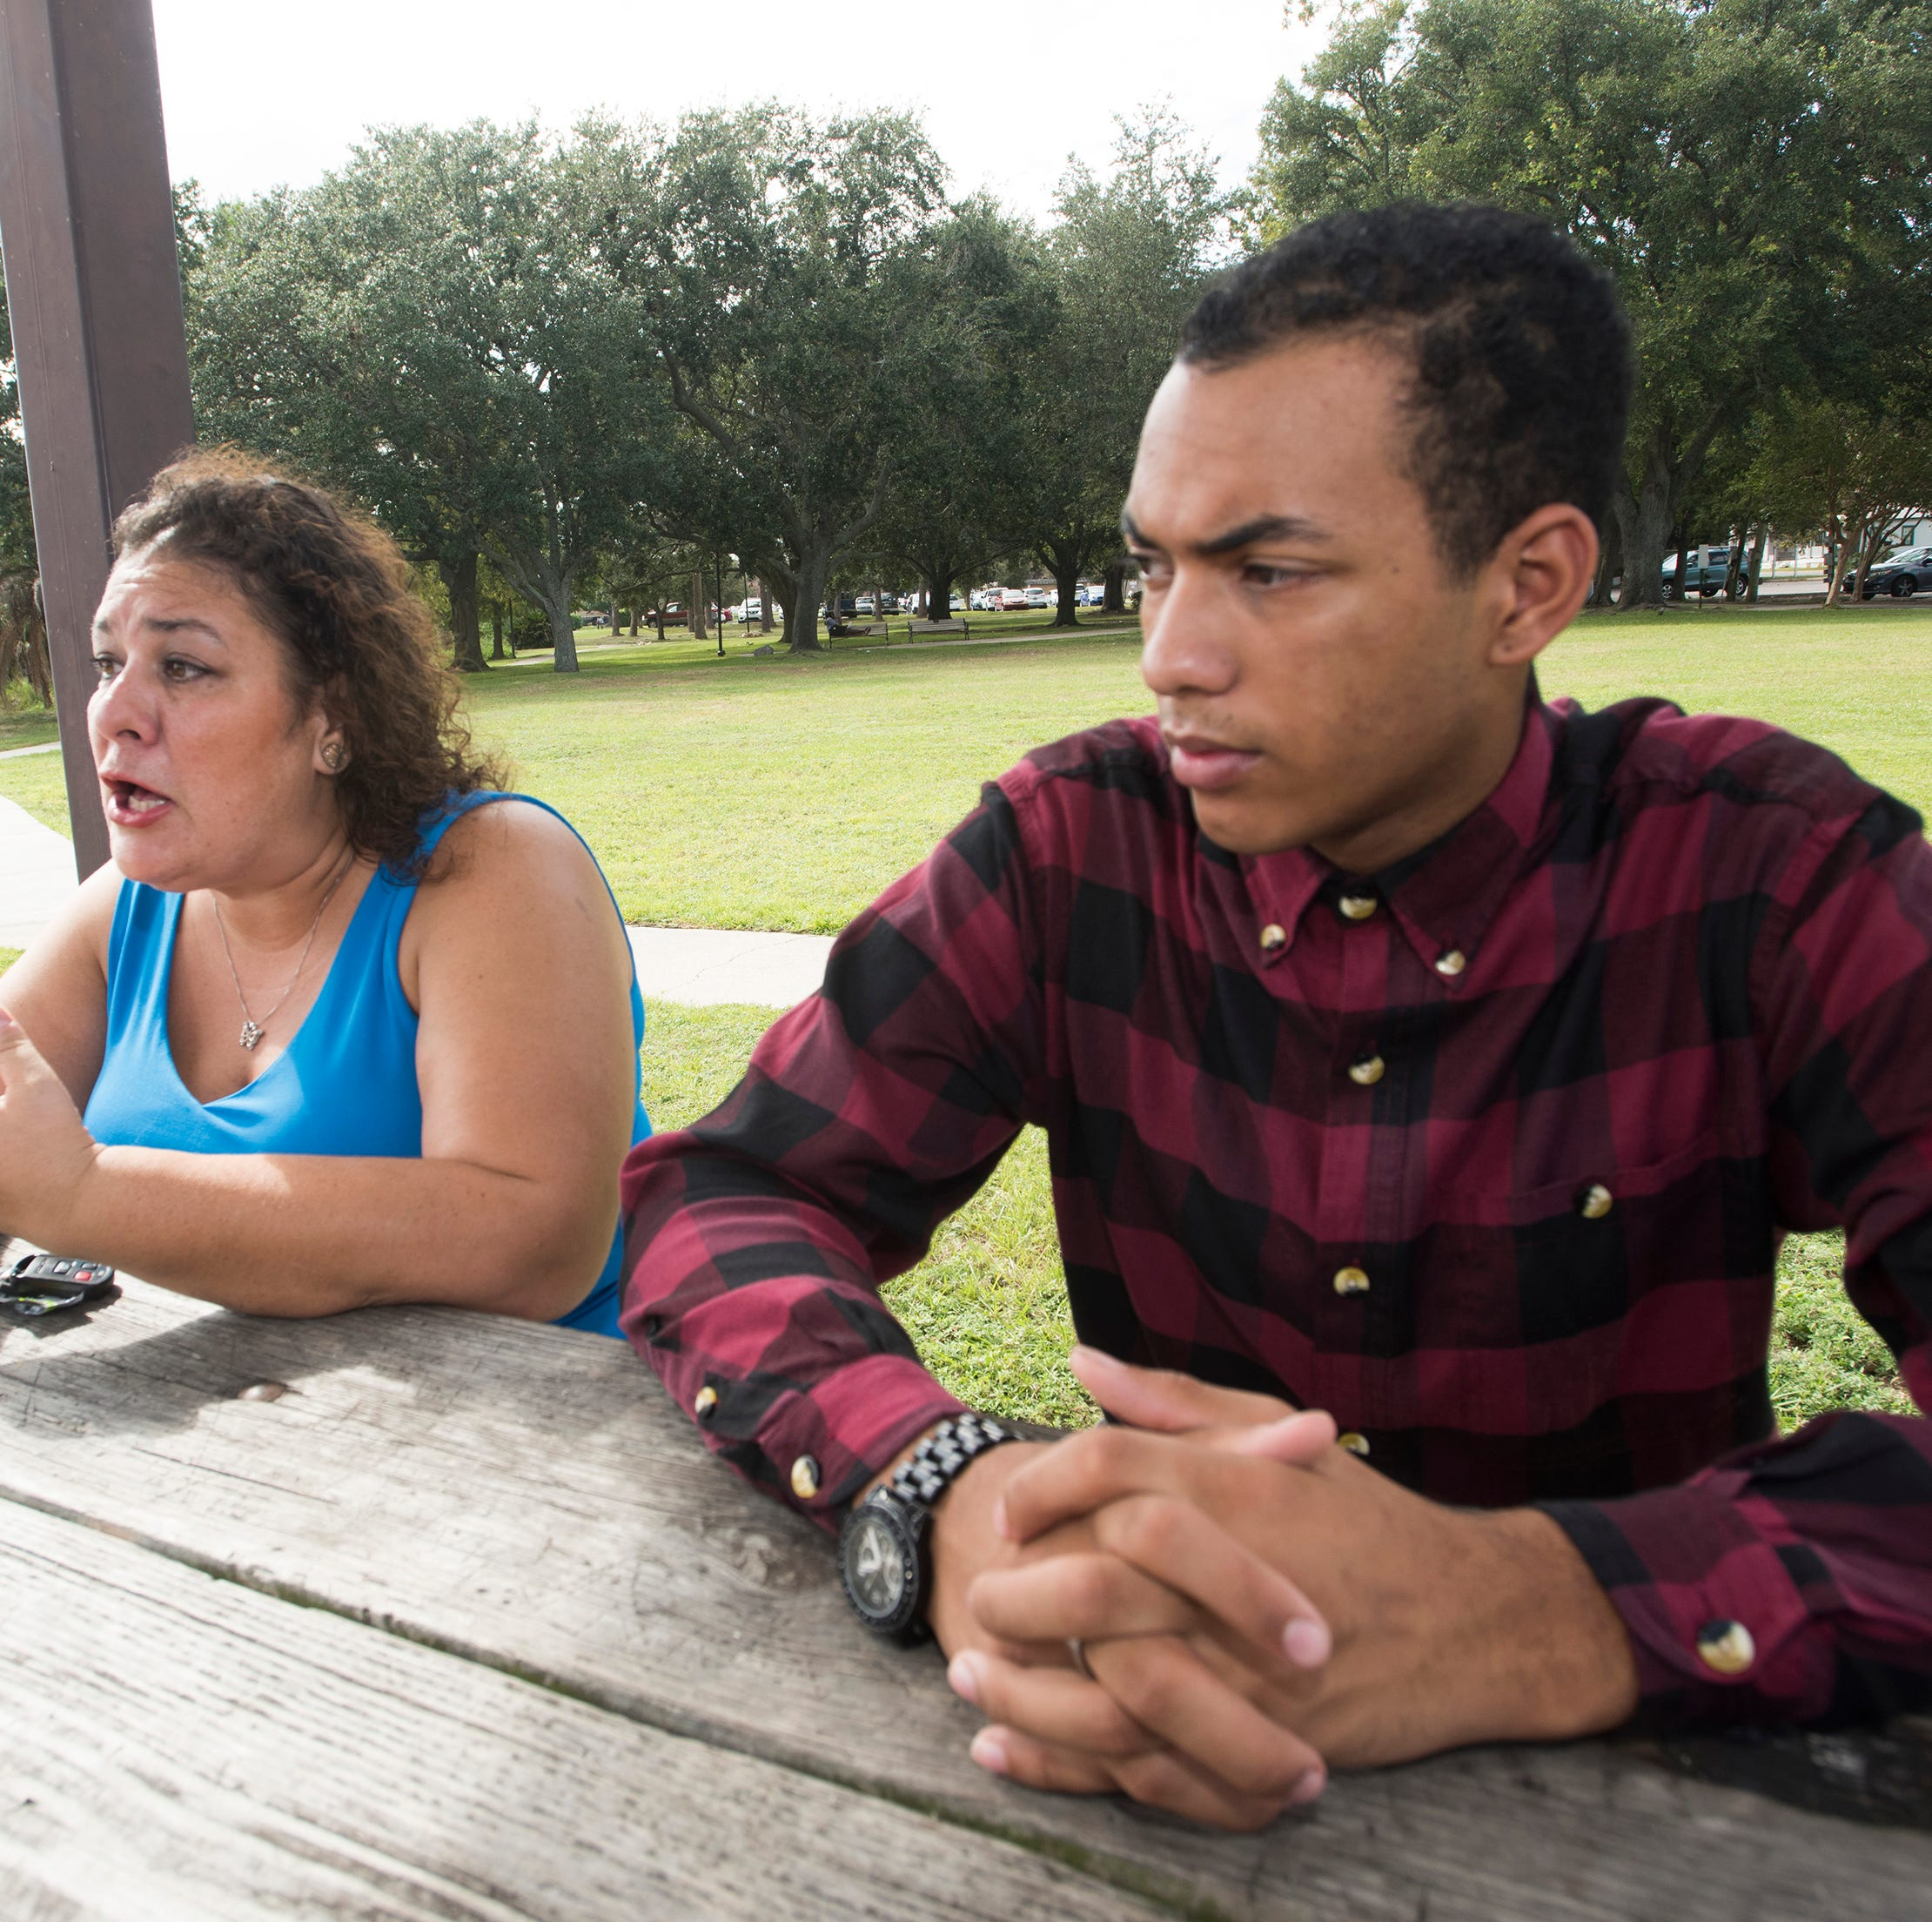 Former Catholic High School sophomore, Jaiden Muniz-Walls, and his mother Diana Muni-Walls are still looking for answers on Monday, Oct. 15, 2018, after bullying incident and physical attack at the high school in late Sept. The attack left Muniz-Walls with injuries to his nose and eye.